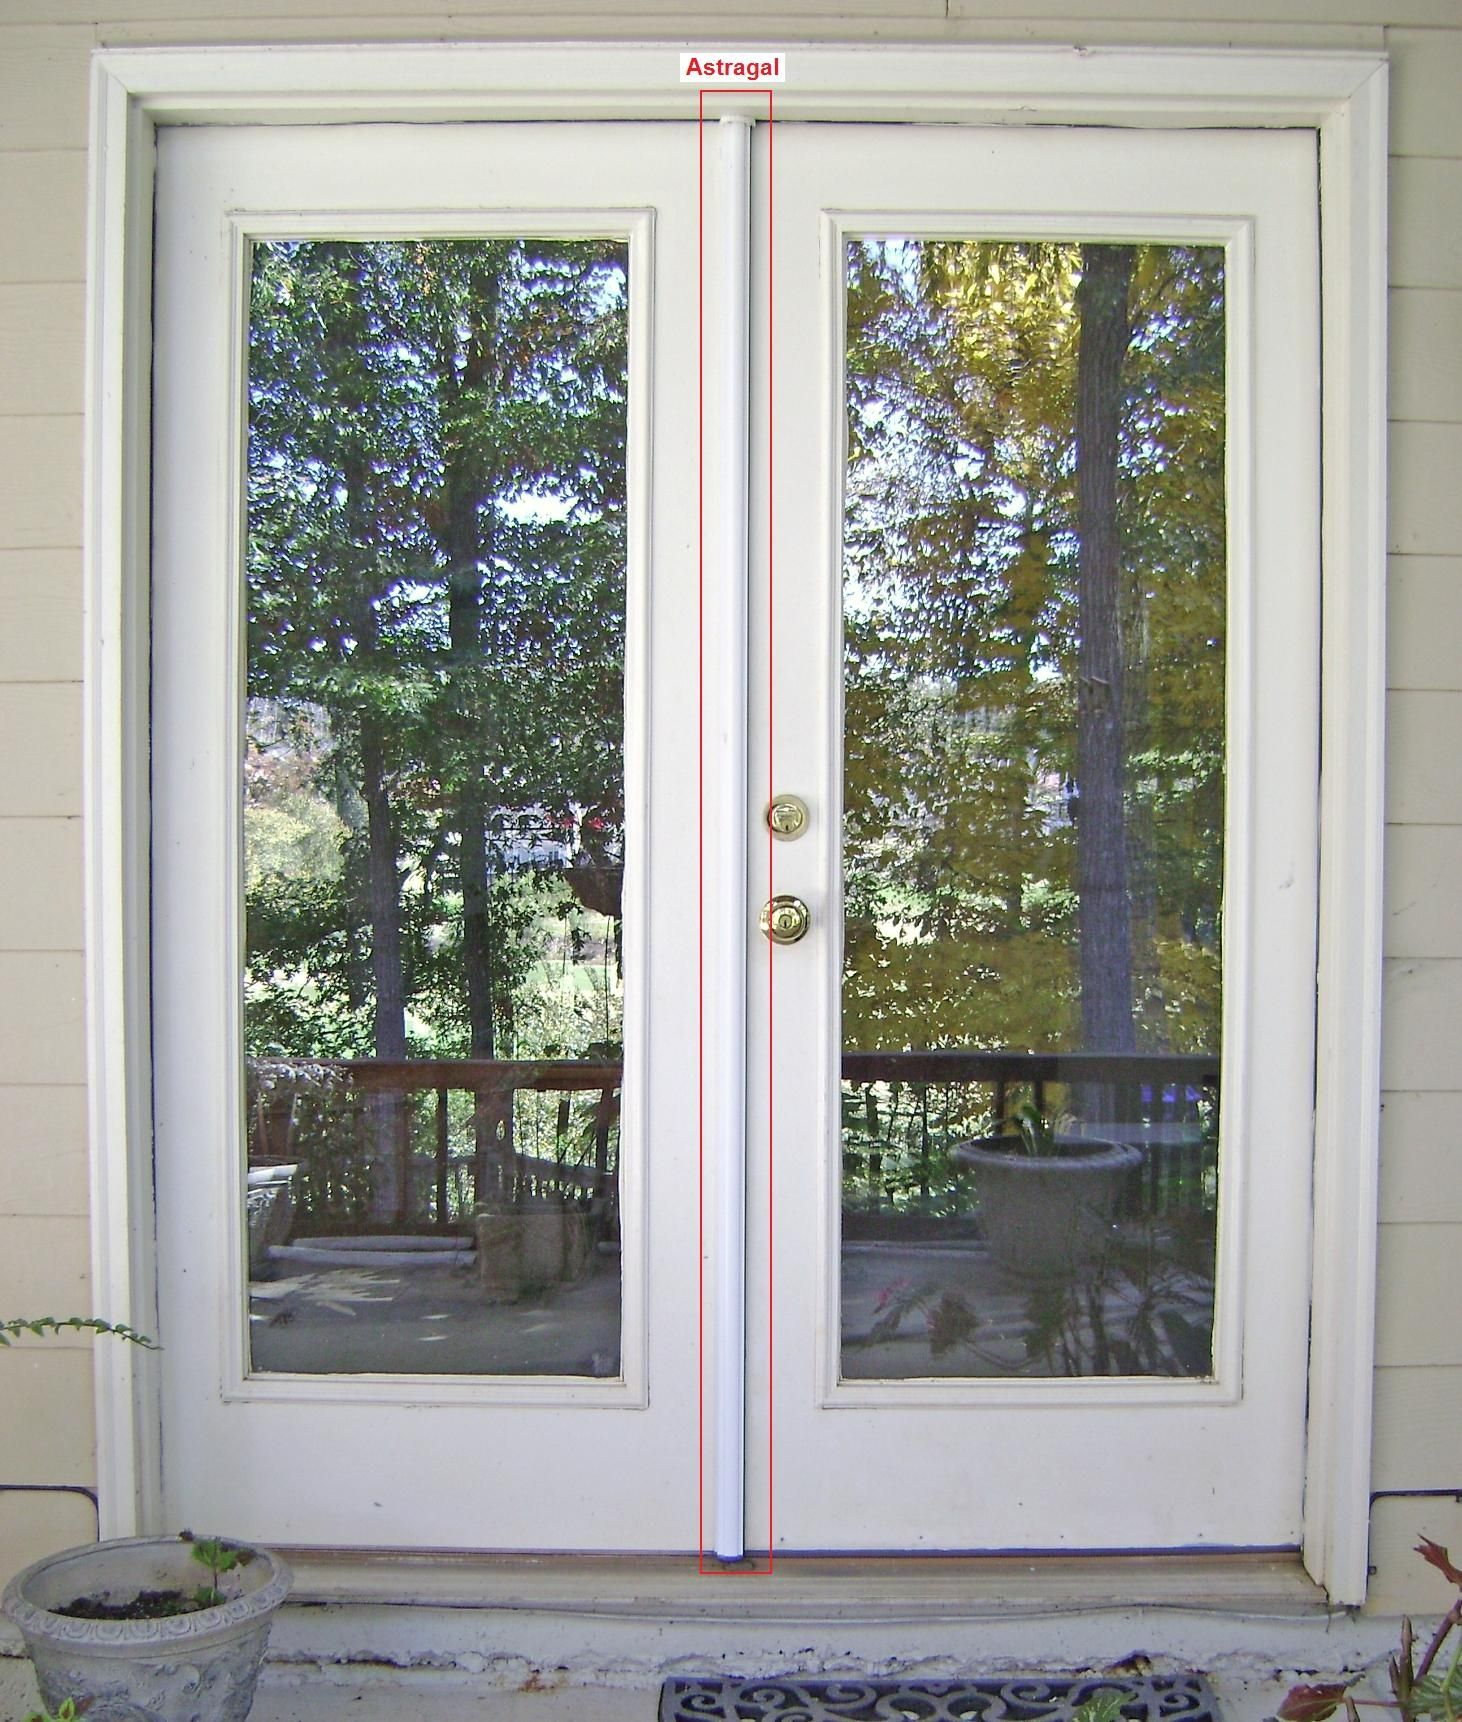 Reliabilt french door screen kit httpthefallguyediting instructions showing how to replace an exterior french door astragal the old wood astragal was broken and replaced with an aluminum unit rubansaba